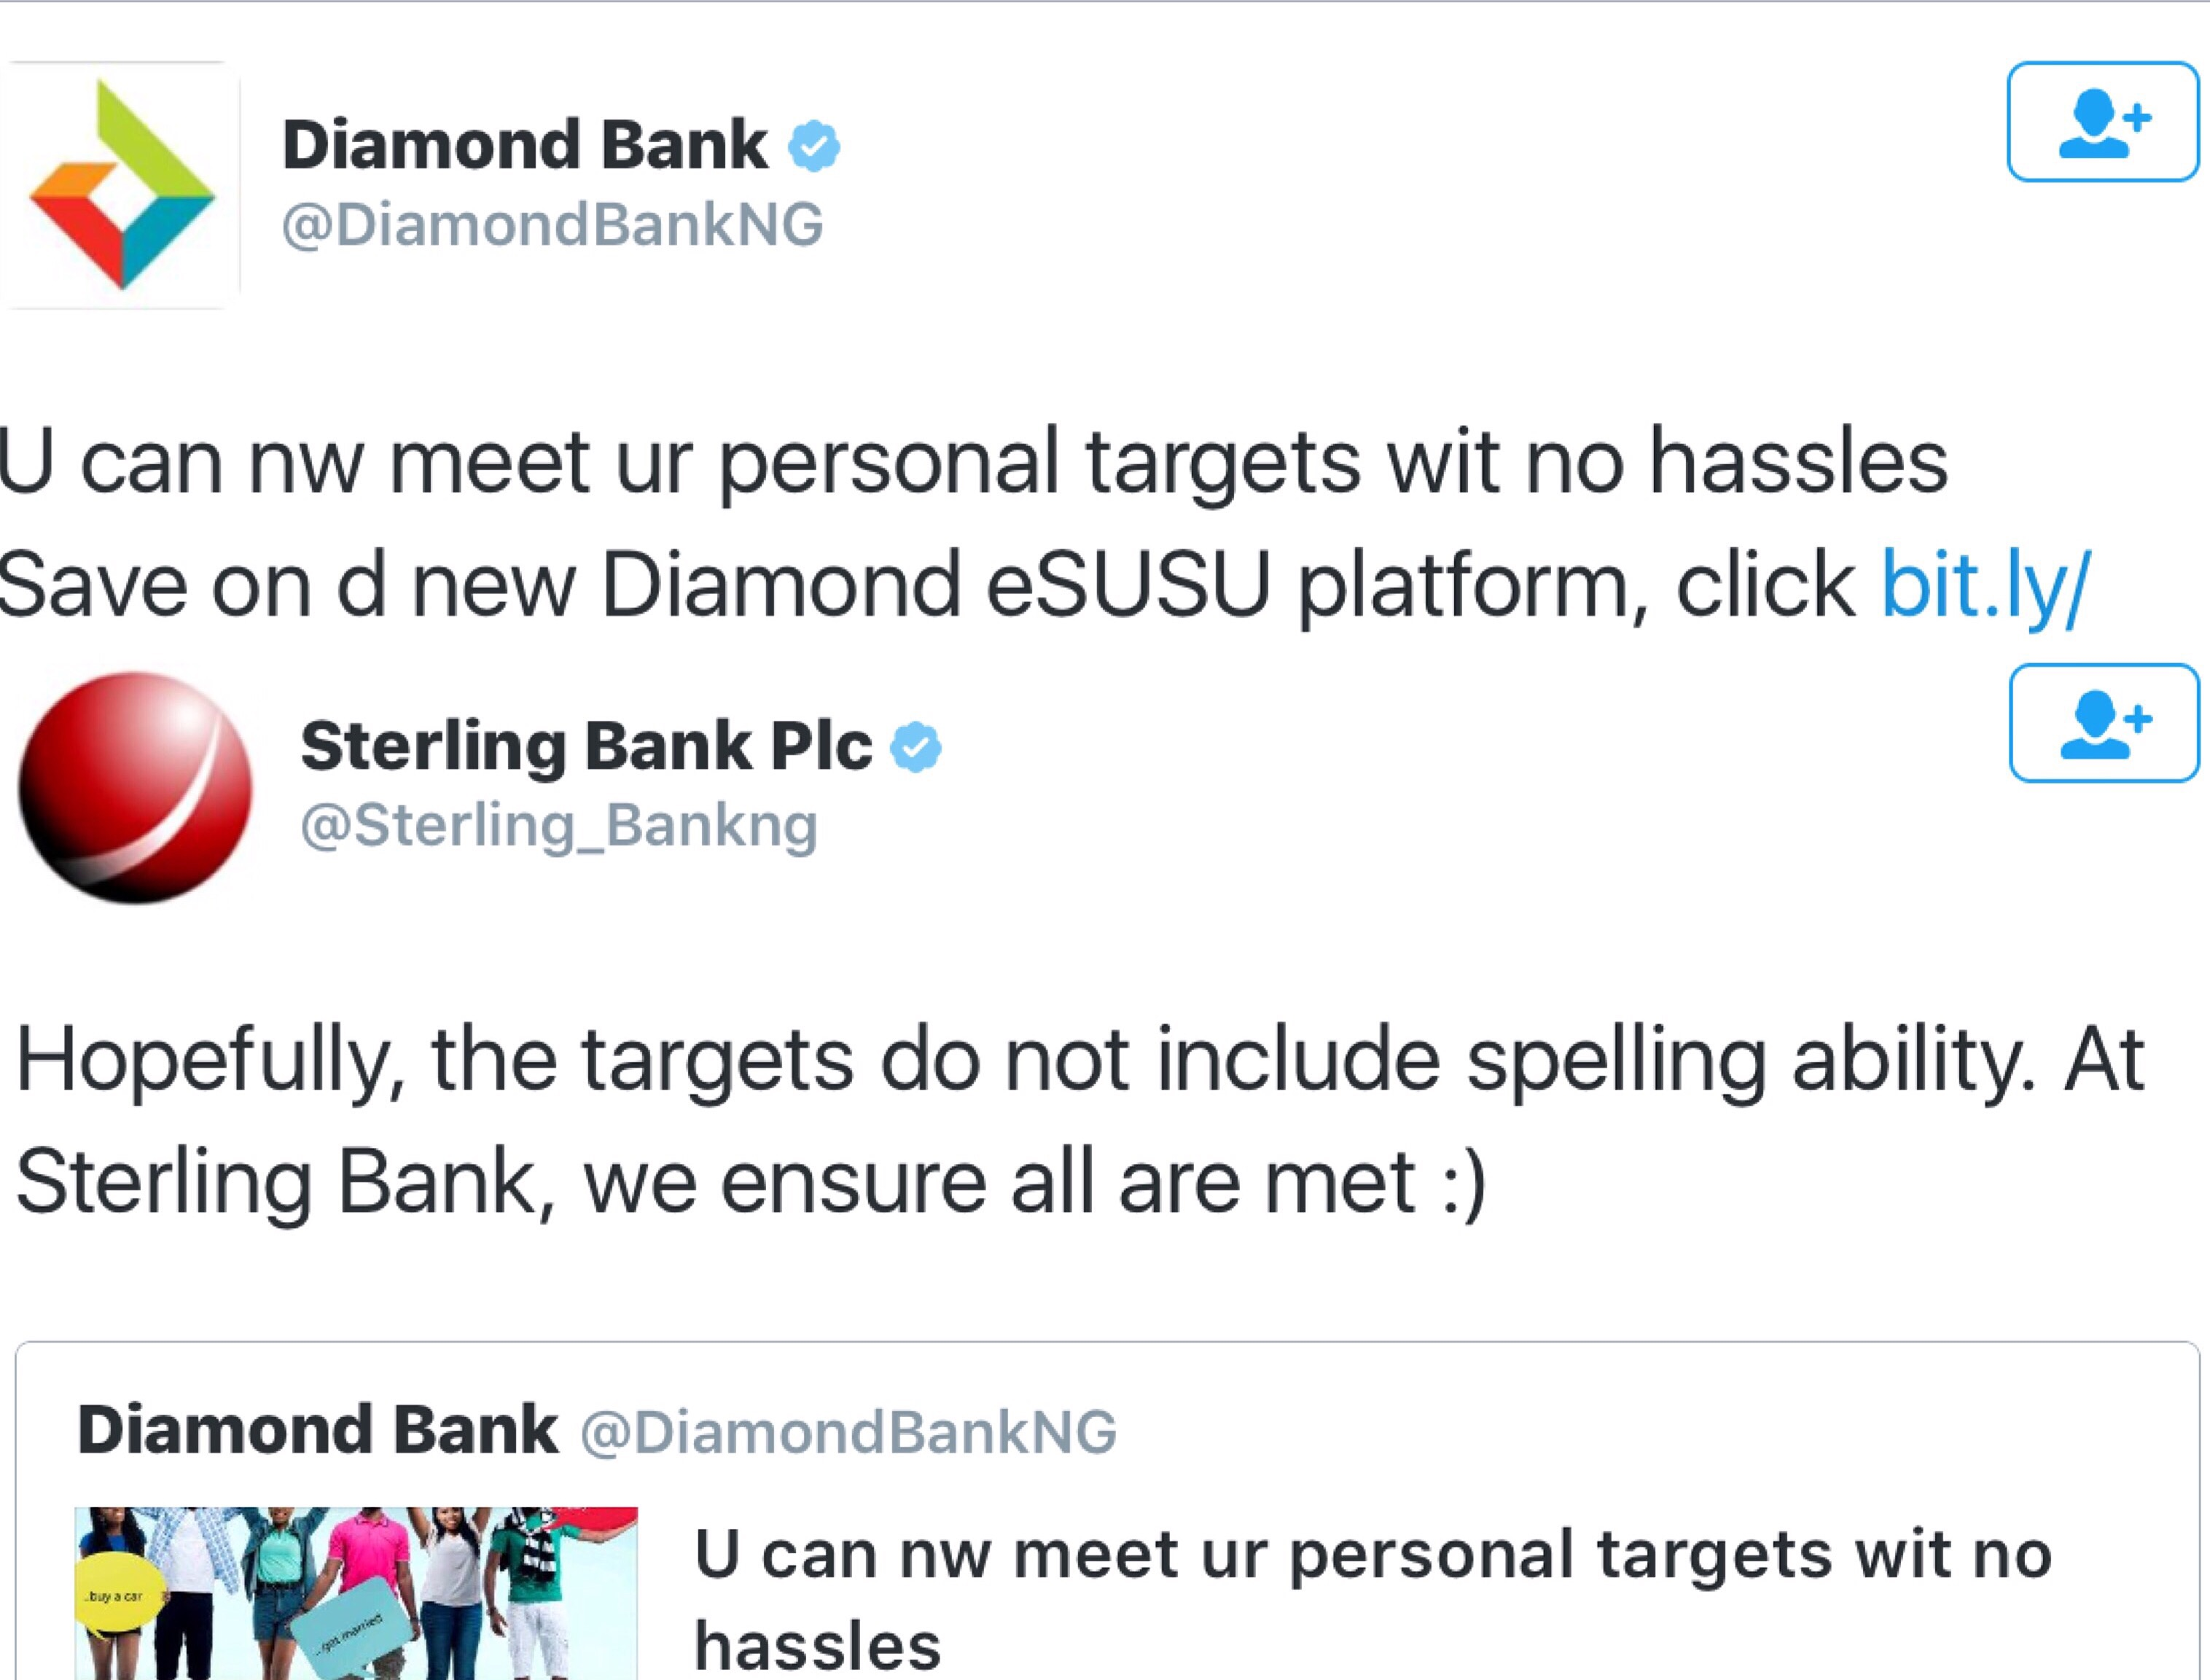 sterlings bank shades diamond bank over spelling errors